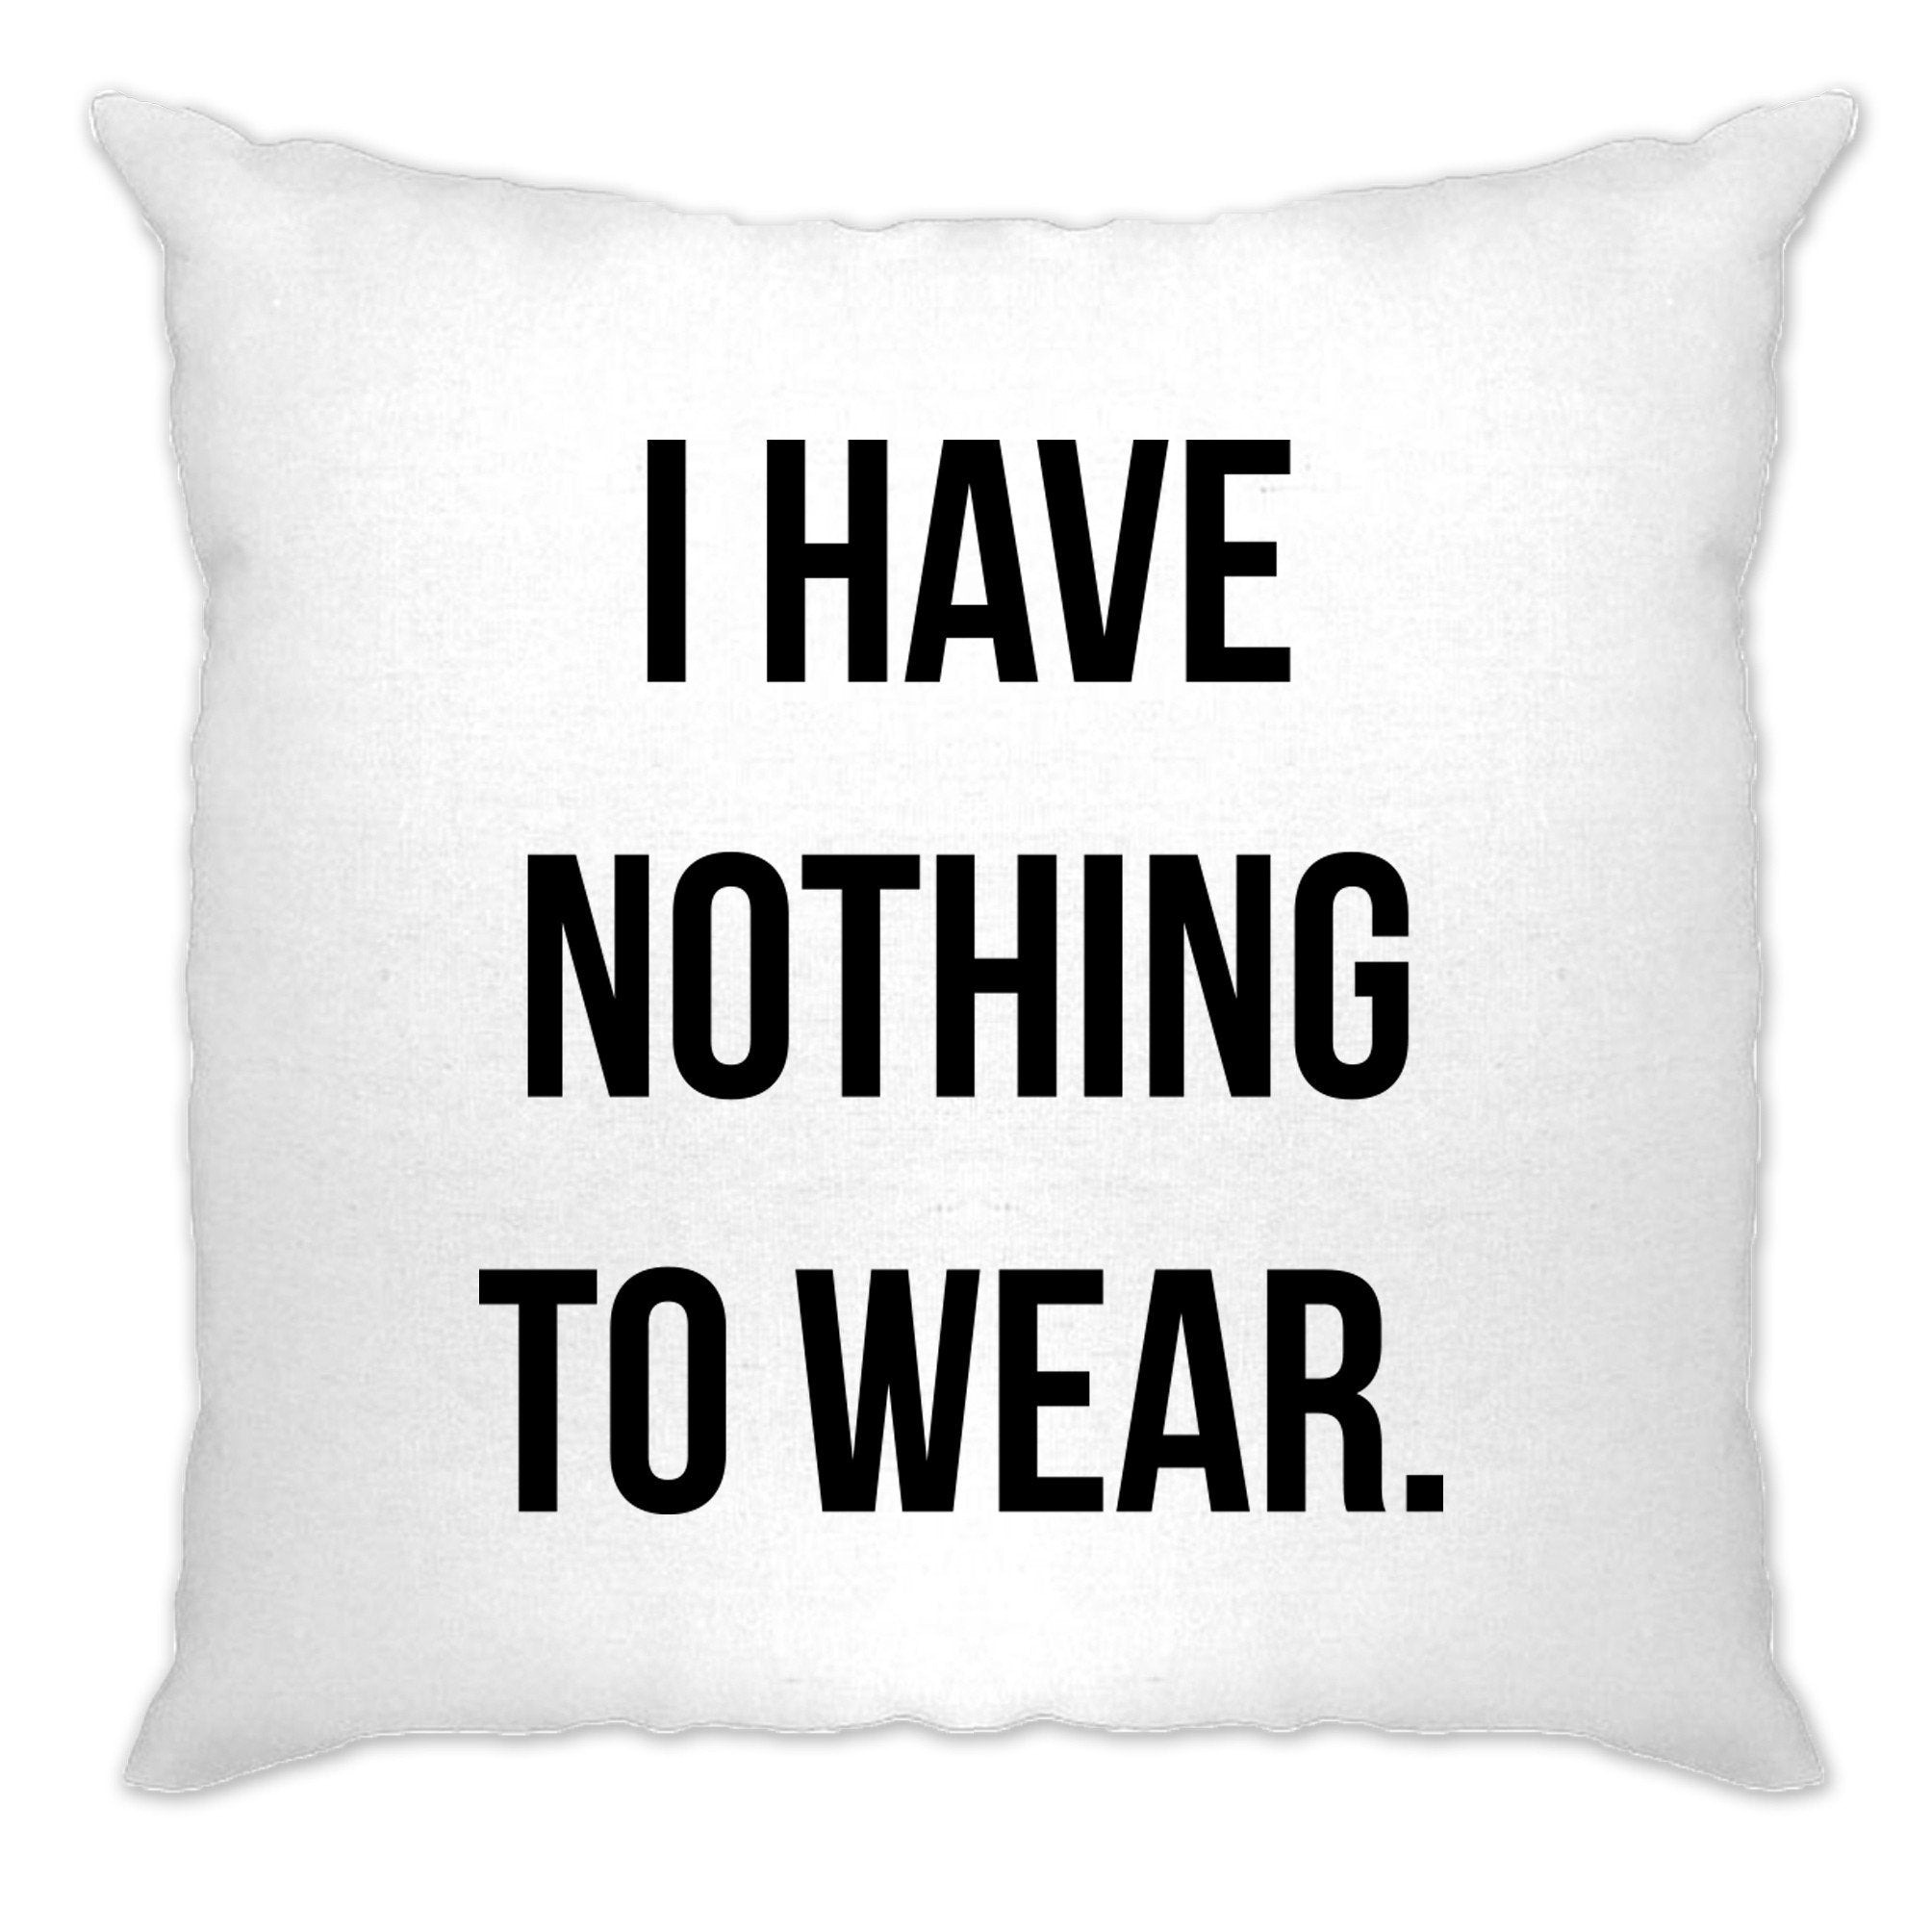 Novelty Slogan Cushion Cover I Have Nothing To Wear.